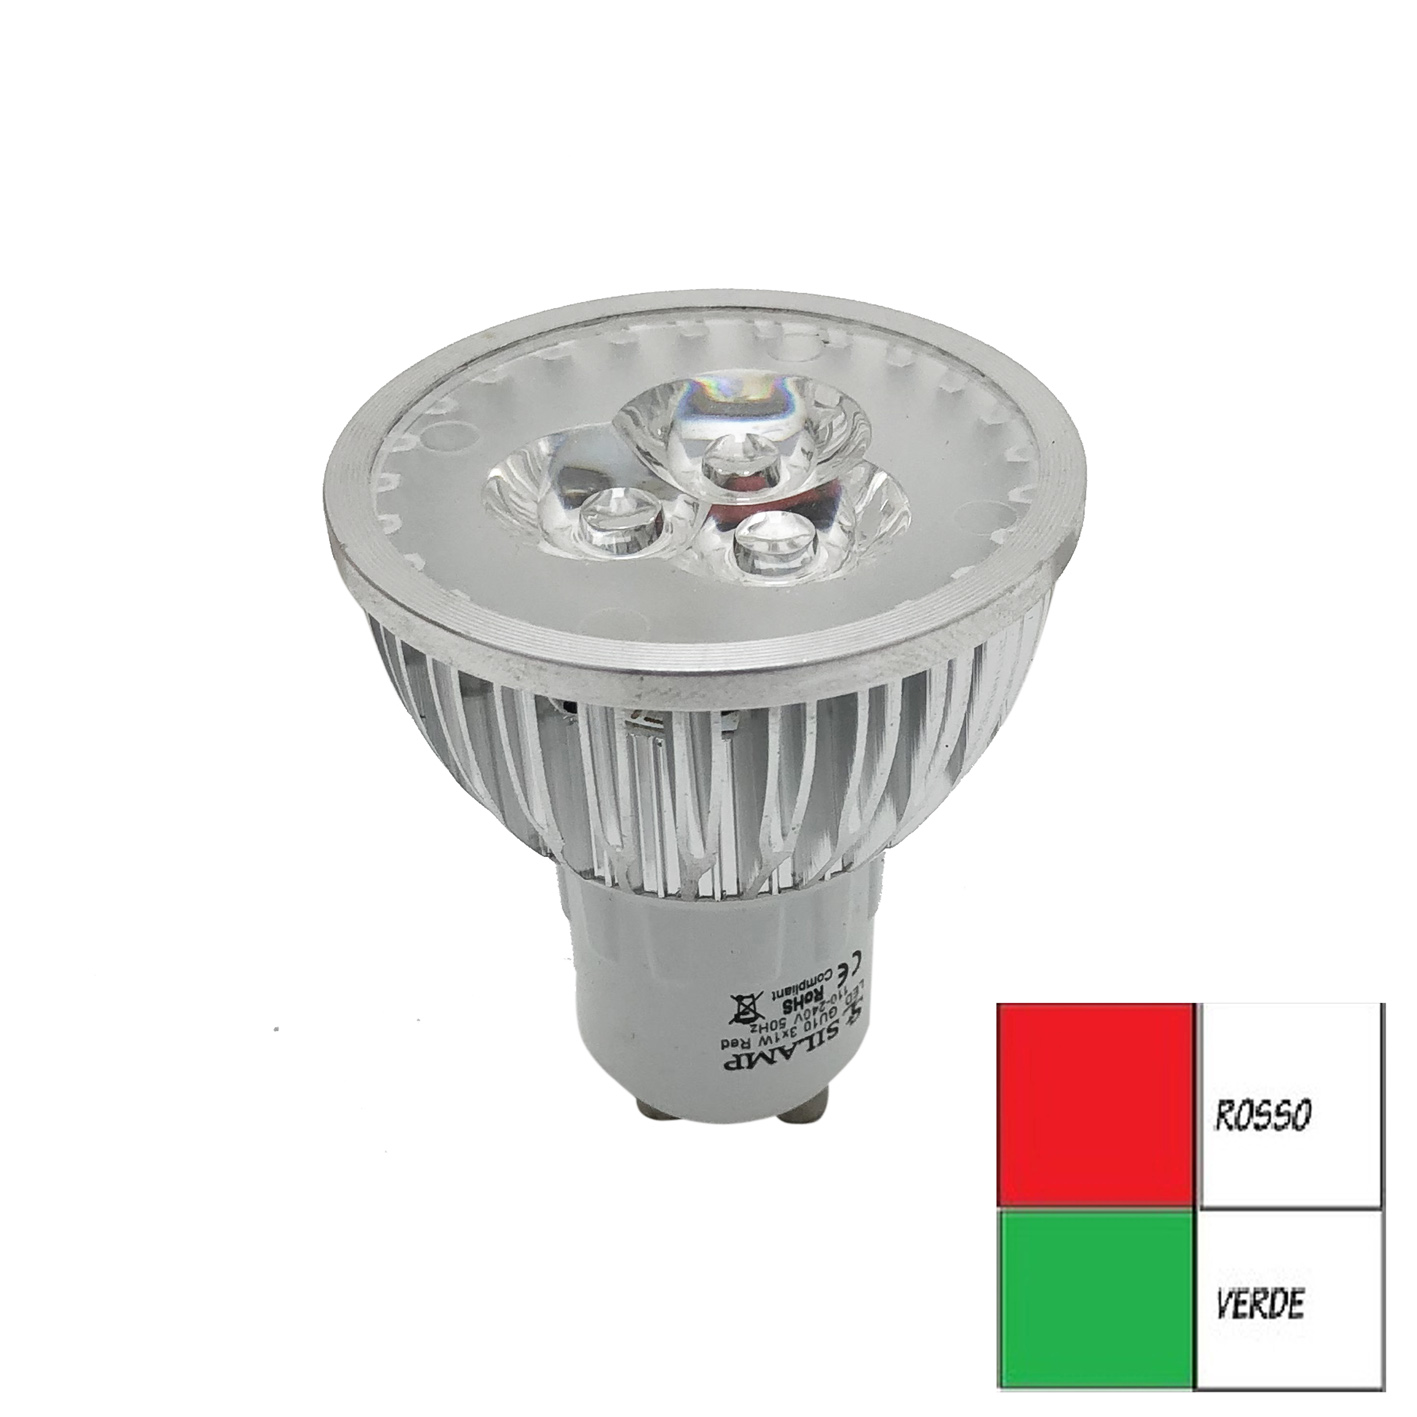 LED bulb Gu10 3x1w Green light or Red spot GU10-3W-COLOR